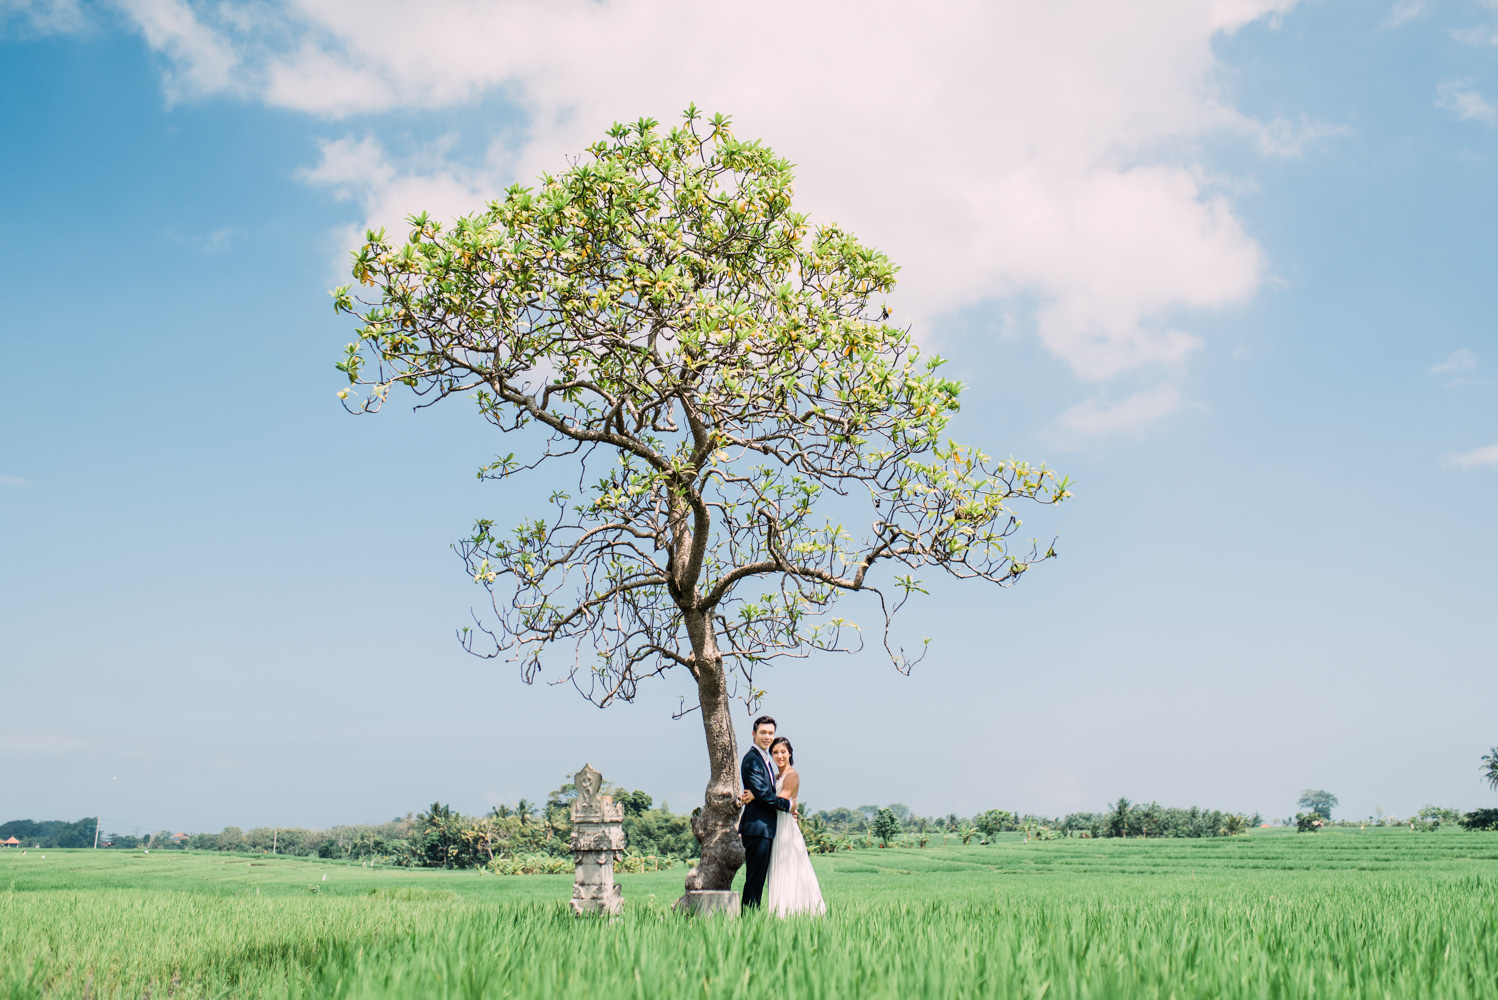 Bali pre wedding location in Seseh Rice Field